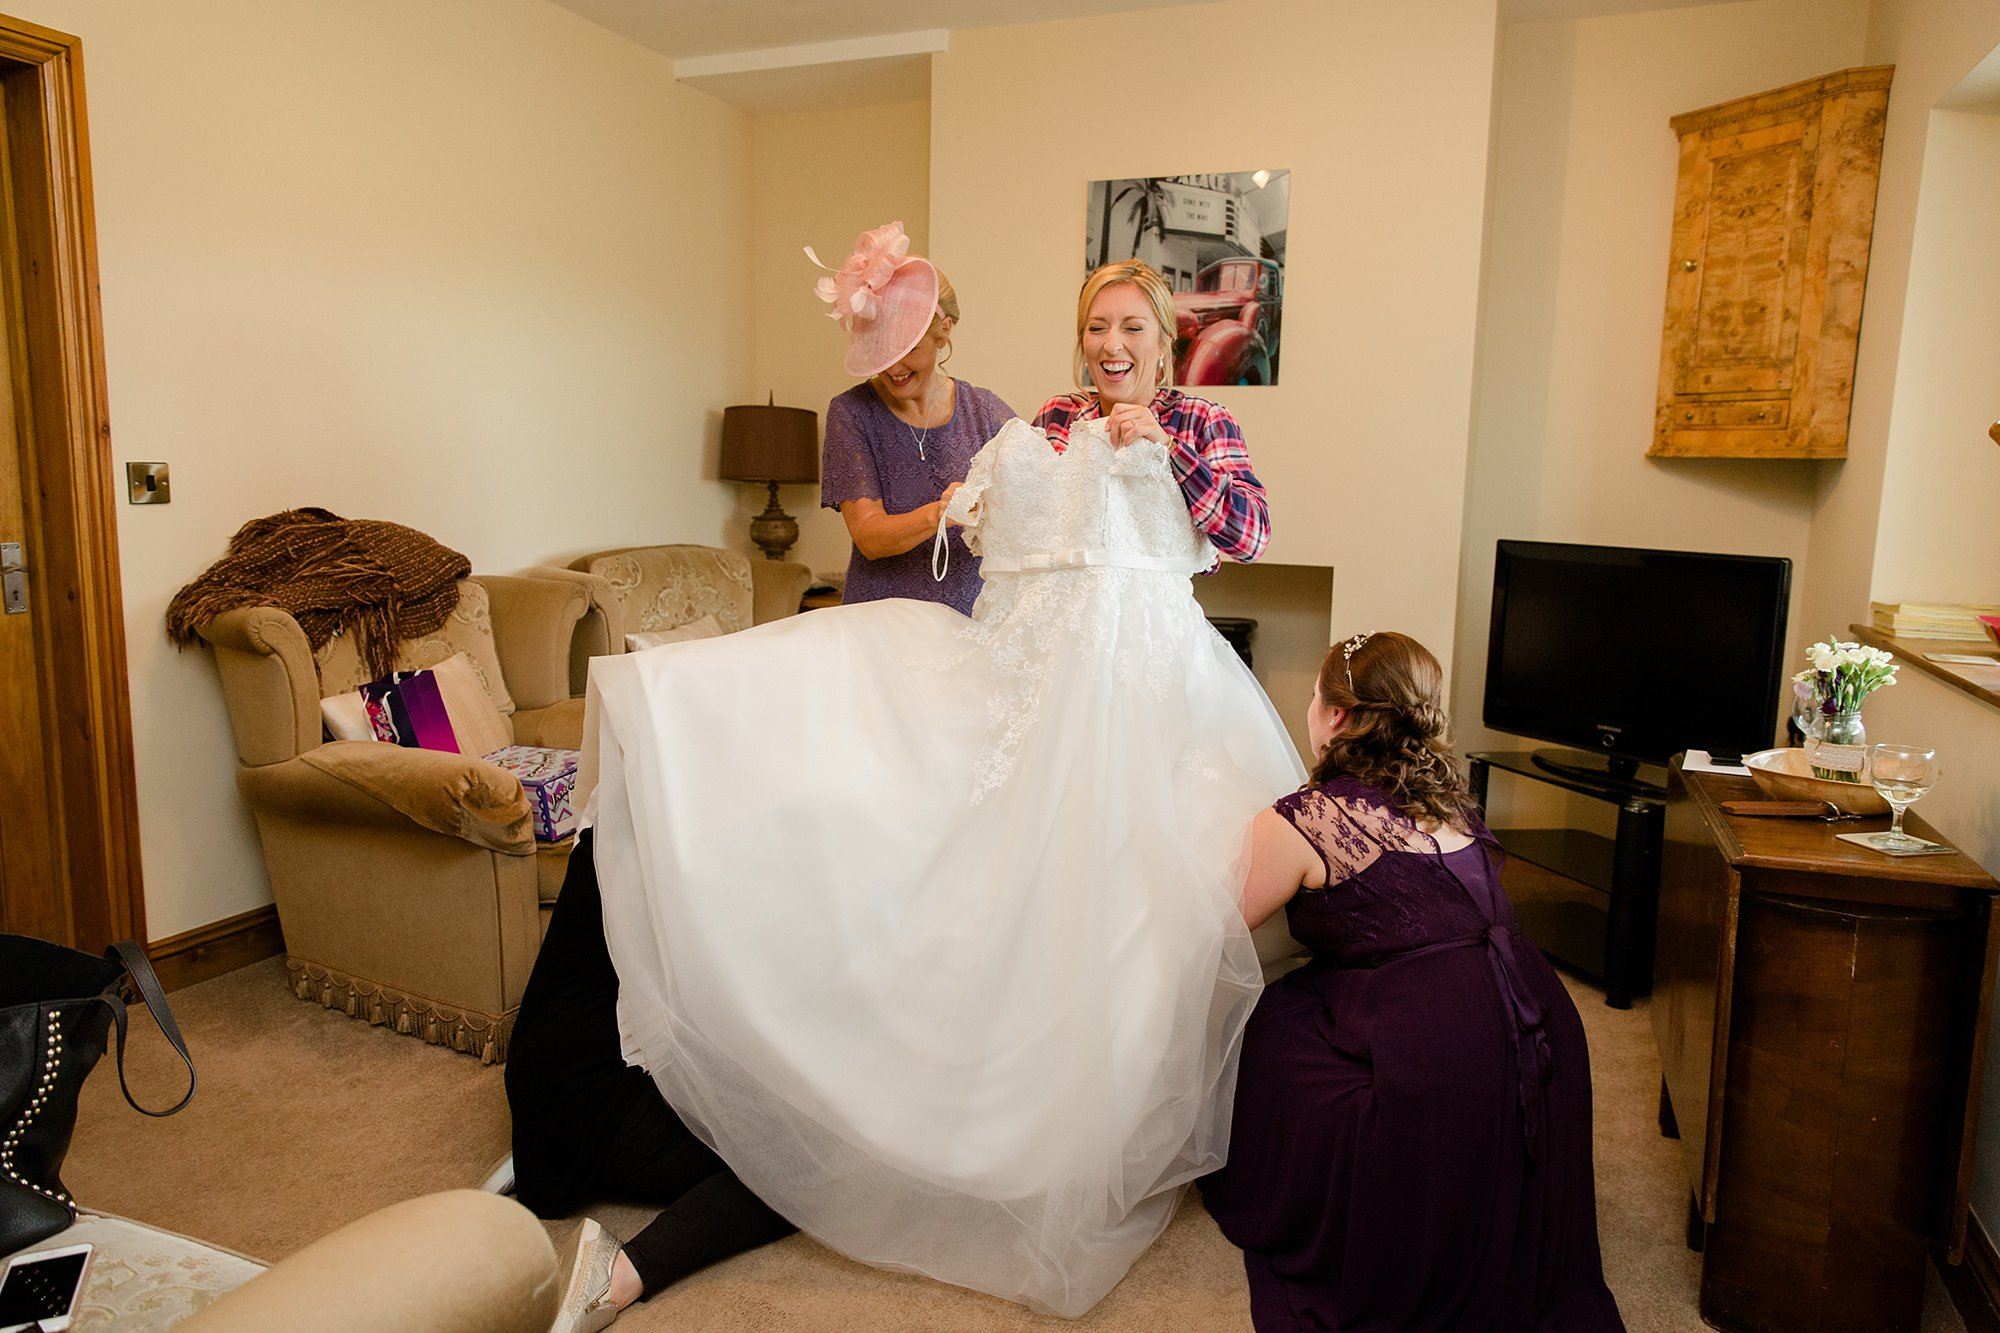 A fun wedding - bride laughing as she puts on dress